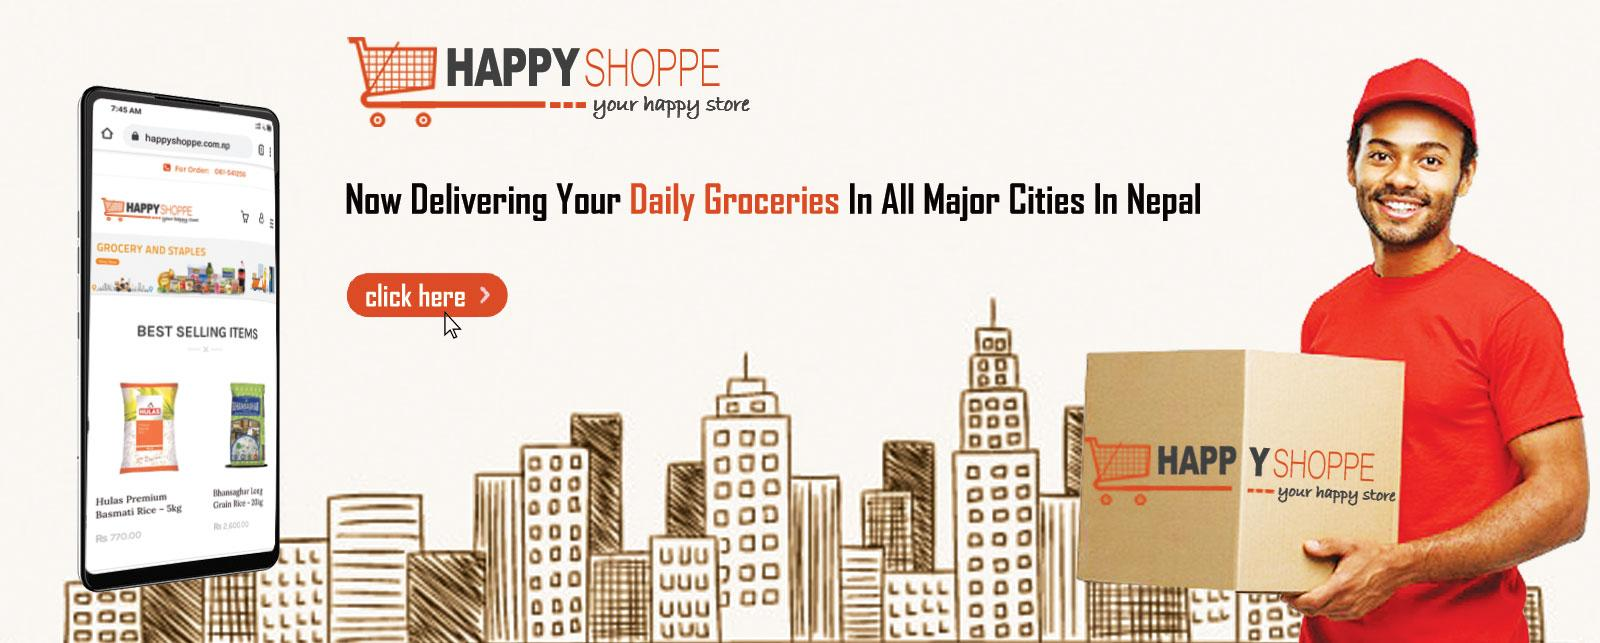 happyshoppe-delivery-banner-1600×643